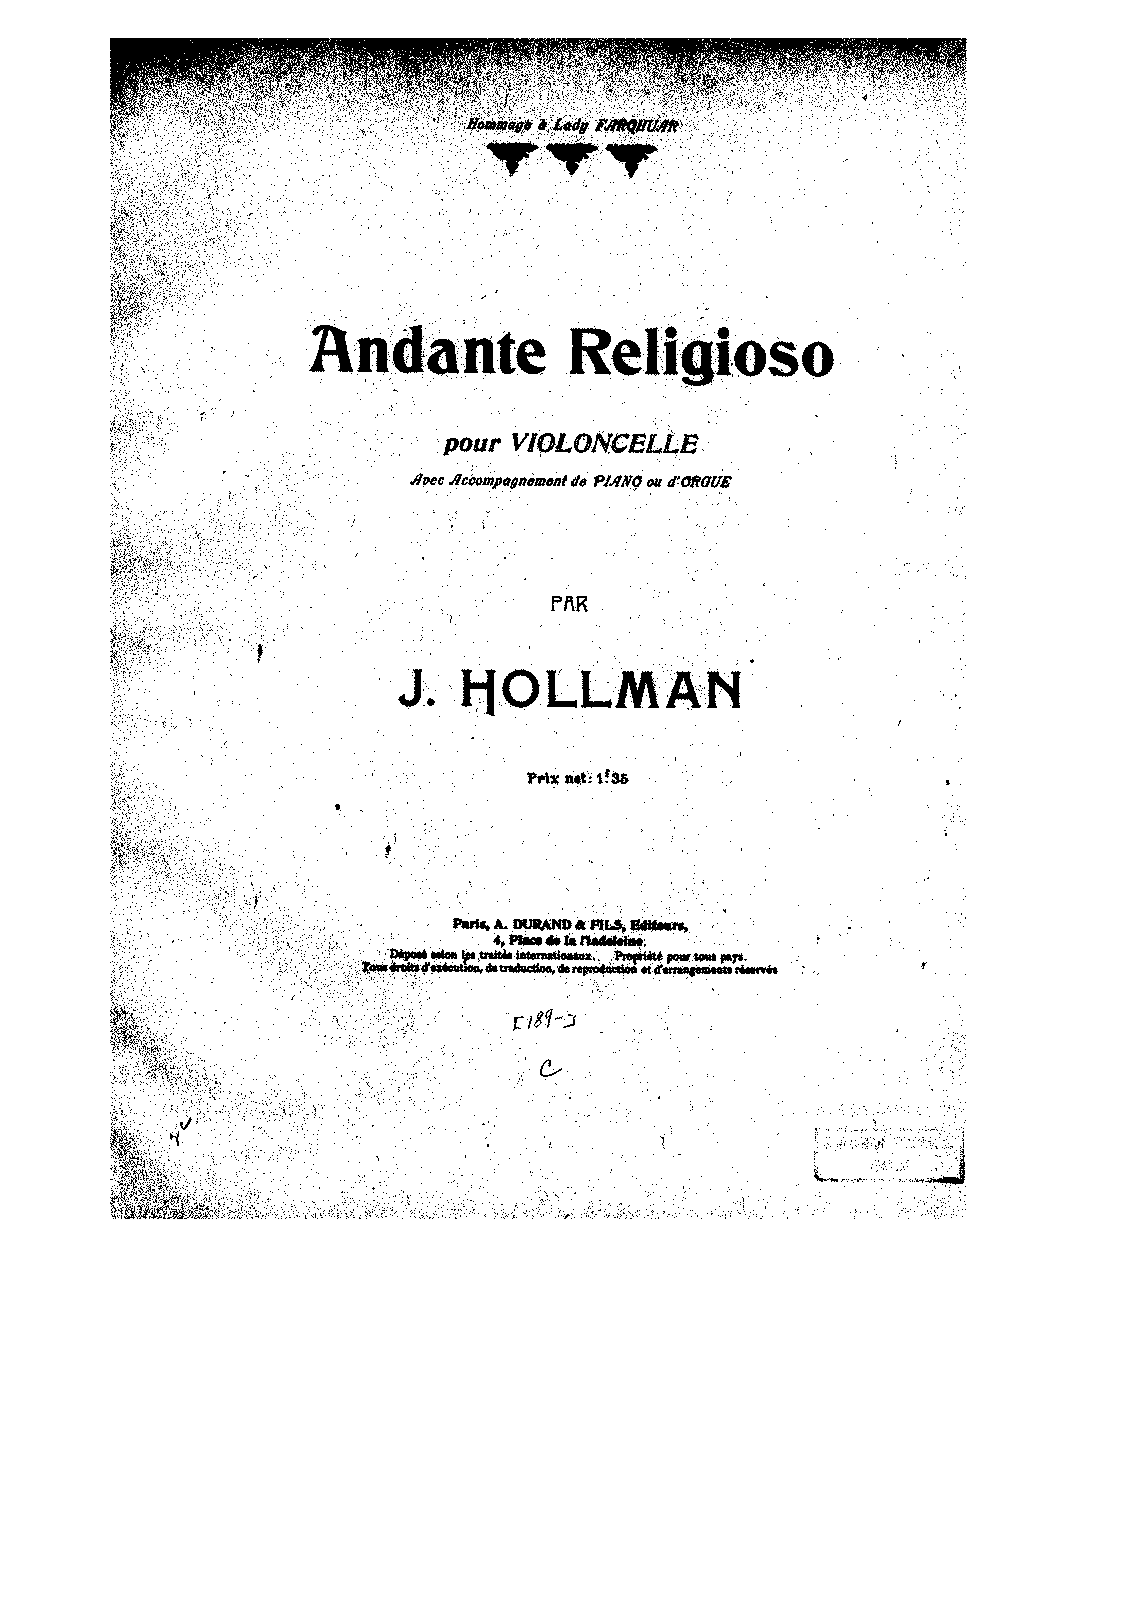 PMLP305617-Hollman - Andante for Cello and Piano or Organ pno.pdf